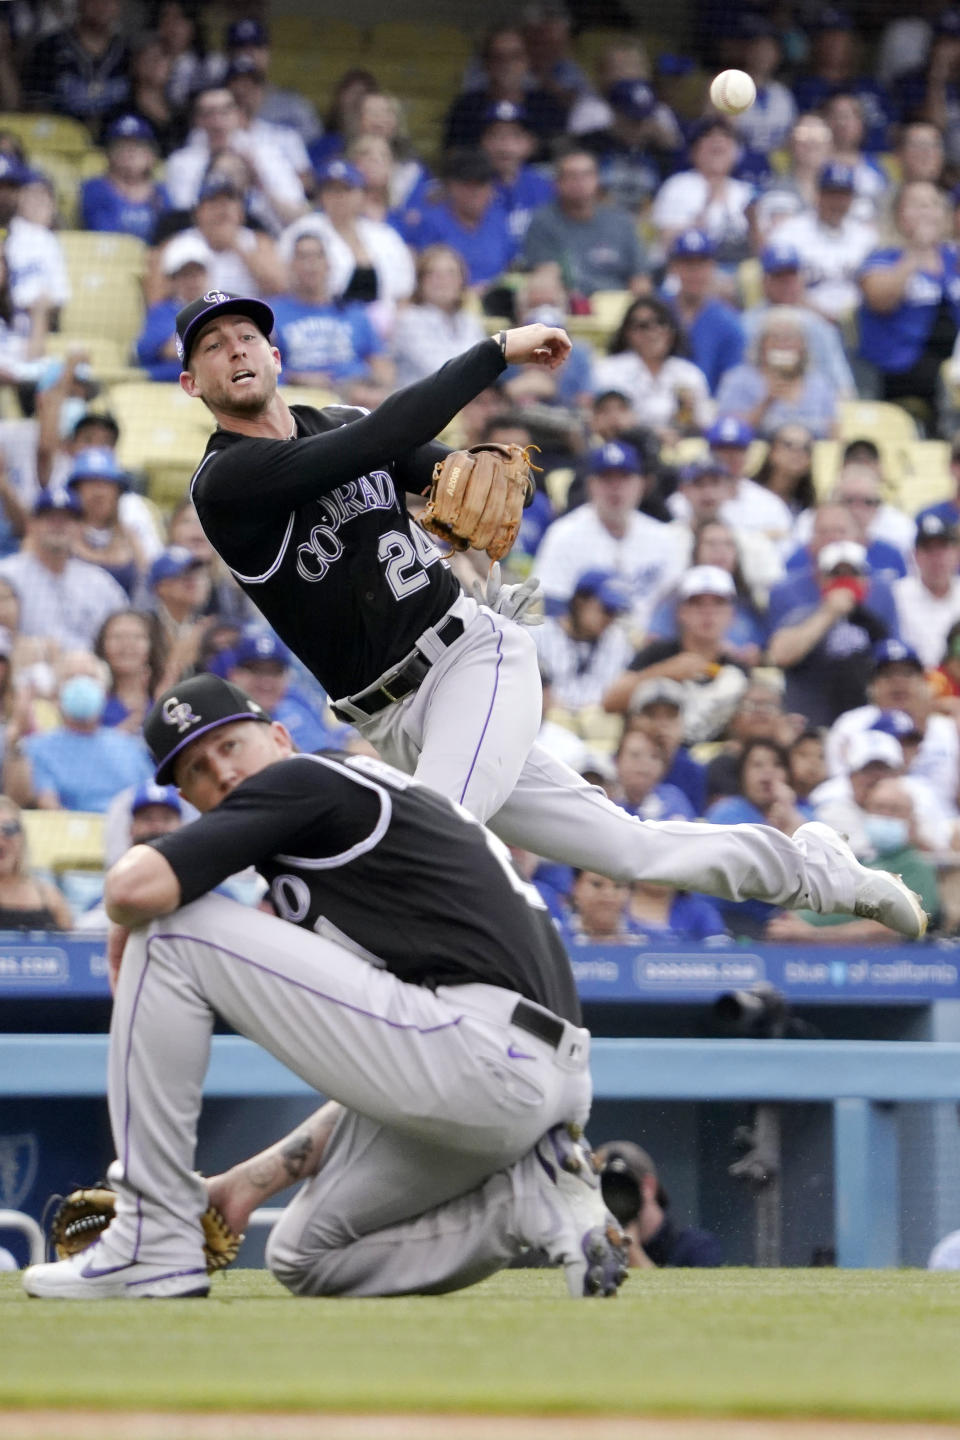 Colorado Rockies second baseman Ryan McMahon, top, attempts to throw out Los Angeles Dodgers' Chris Taylor at first as starting pitcher Kyle Freeland watches during the first inning of a baseball game Saturday, July 24, 2021, in Los Angeles. Taylor was safe at first on the play. (AP Photo/Mark J. Terrill)